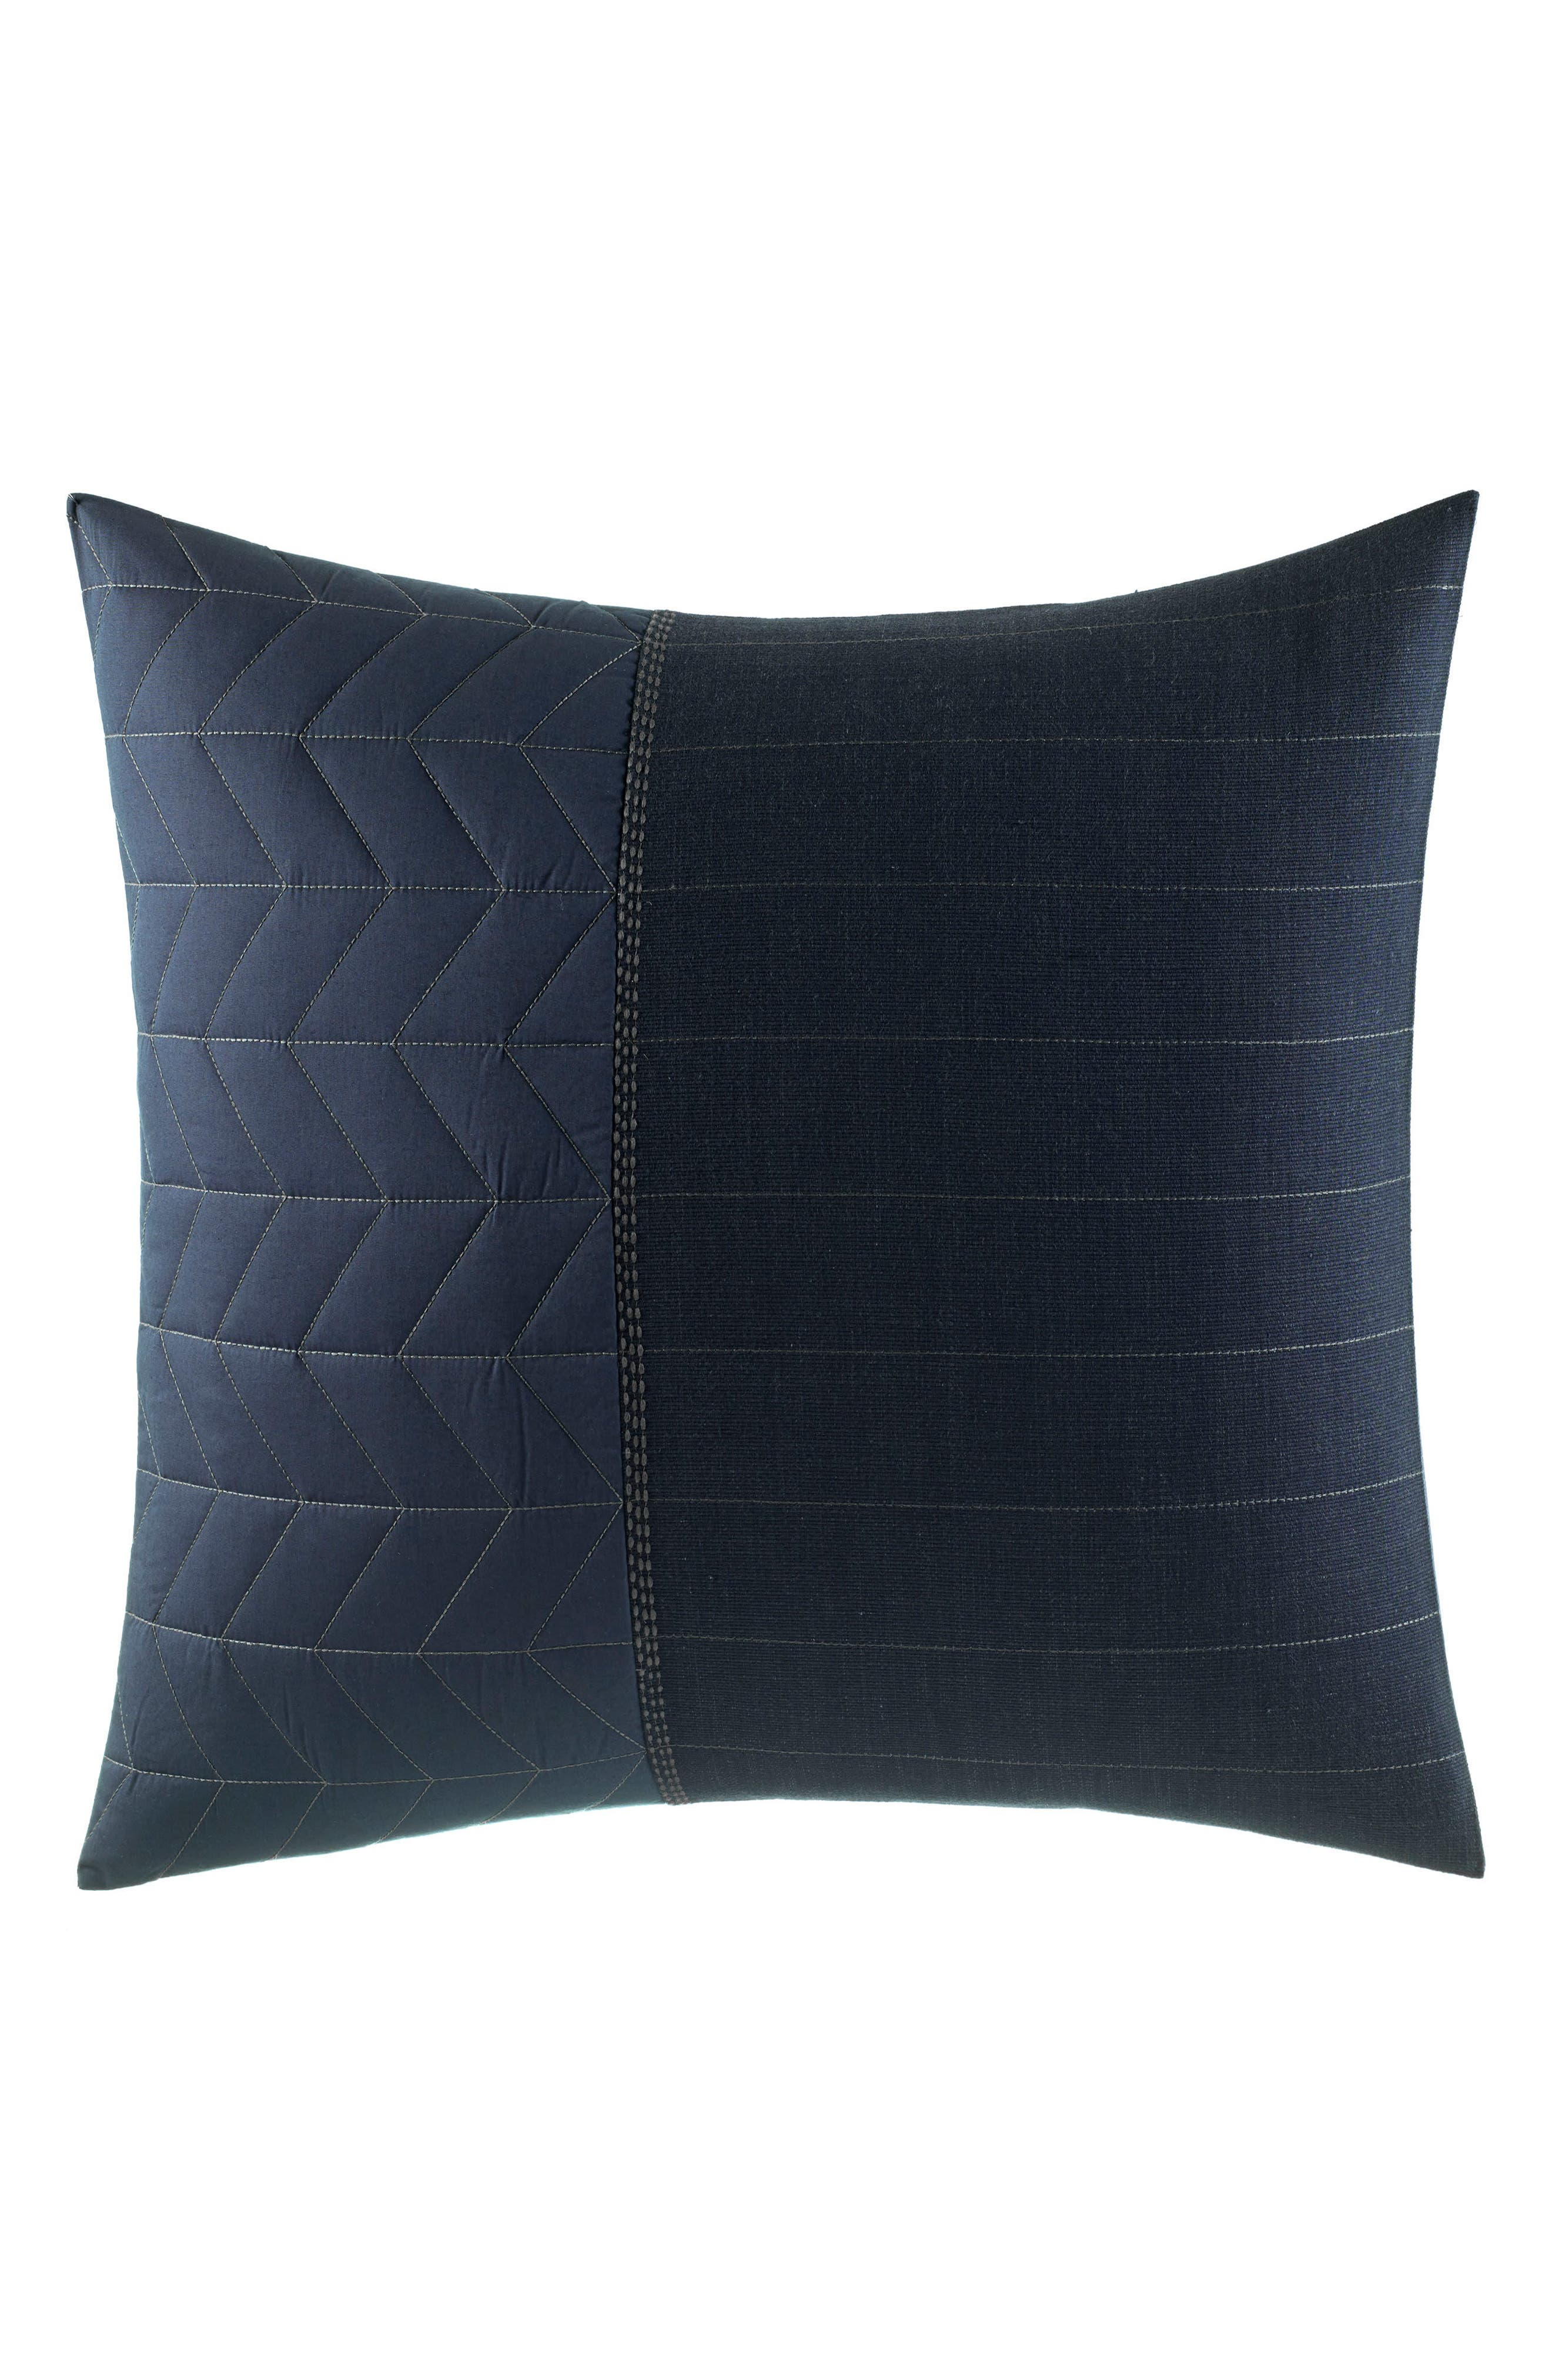 Quilted Euro Sham,                             Main thumbnail 1, color,                             NAVY